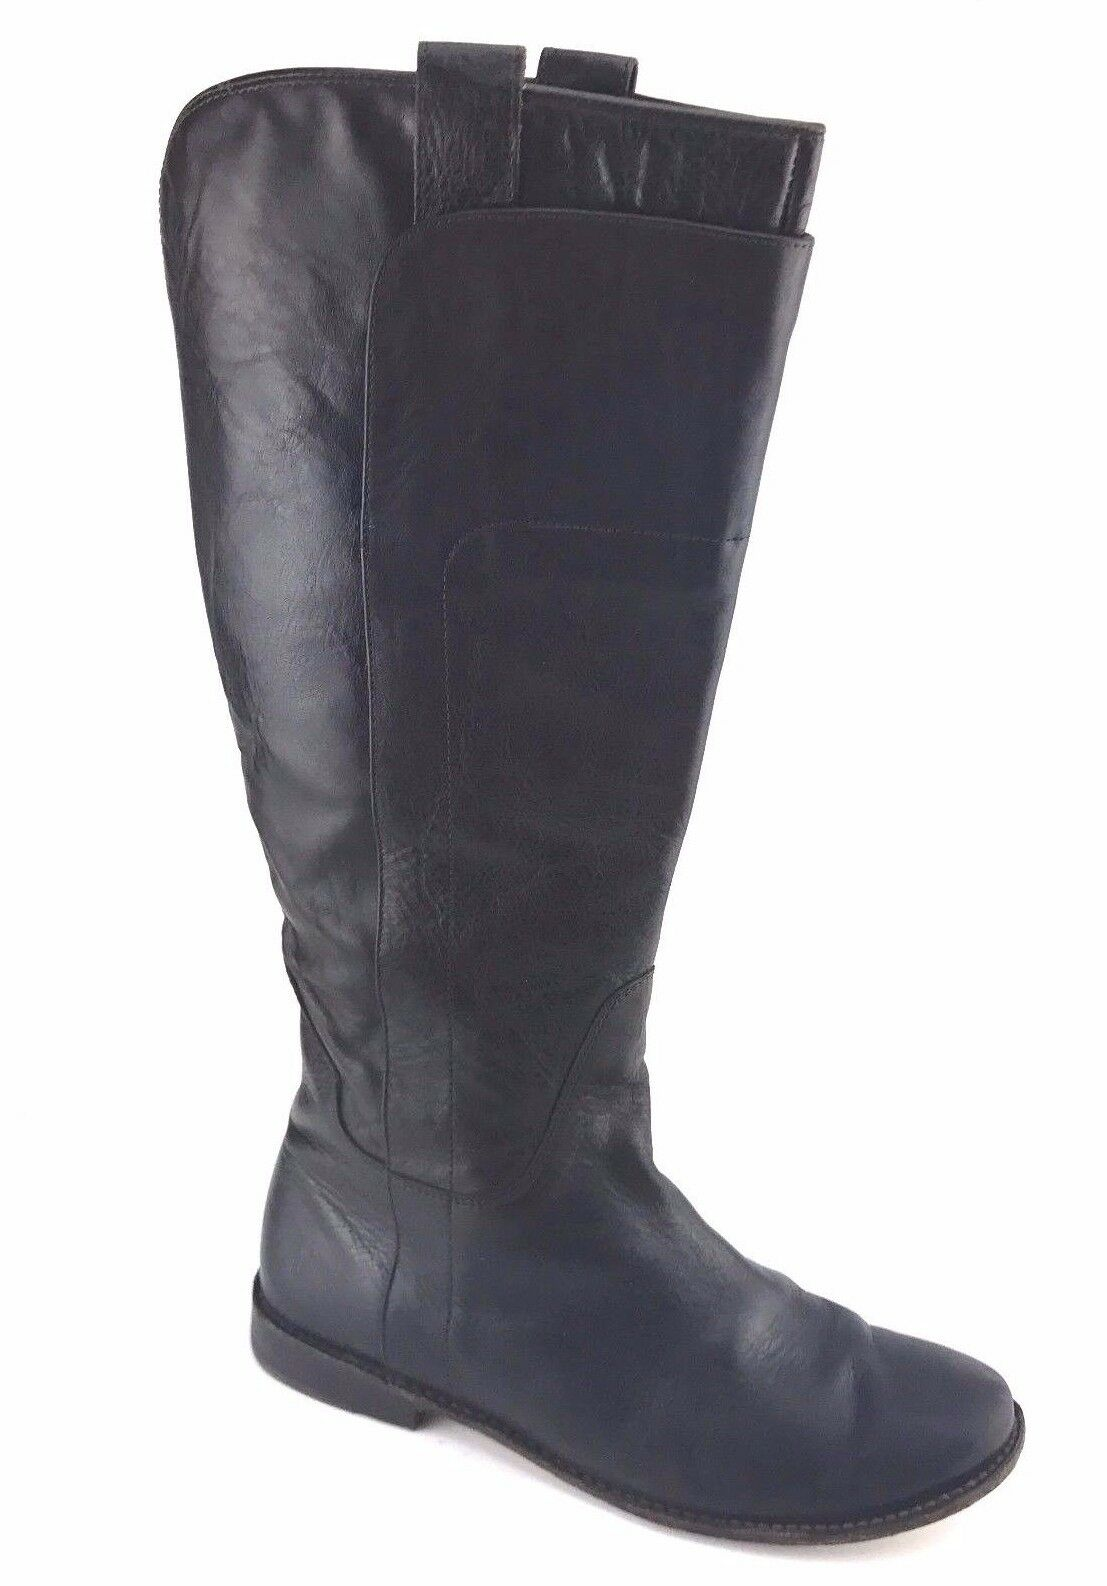 FRYE Paige Tall Knee High Riding Boot Distressed Brown Leather Womens SIZE 9.5 B